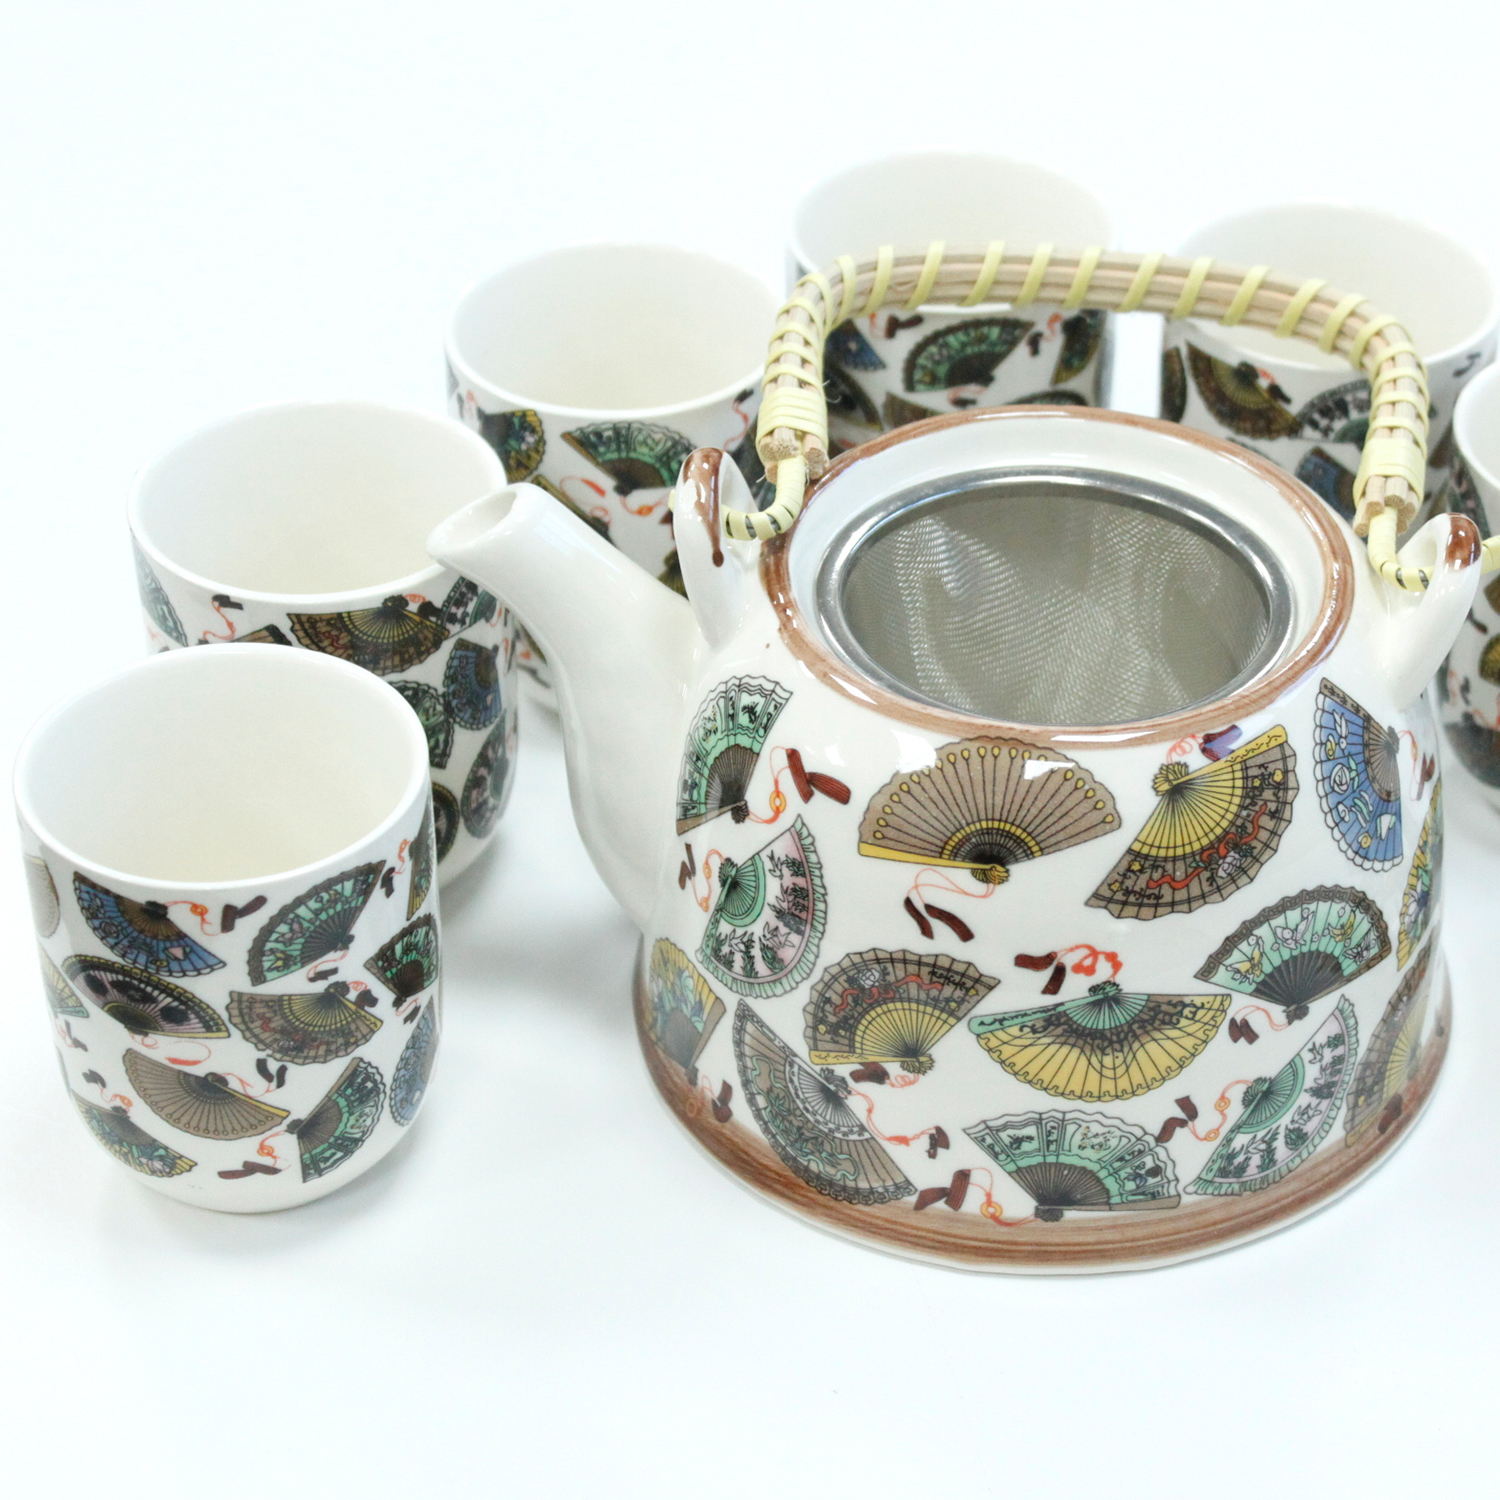 Herbal Teapot Set - China Fans